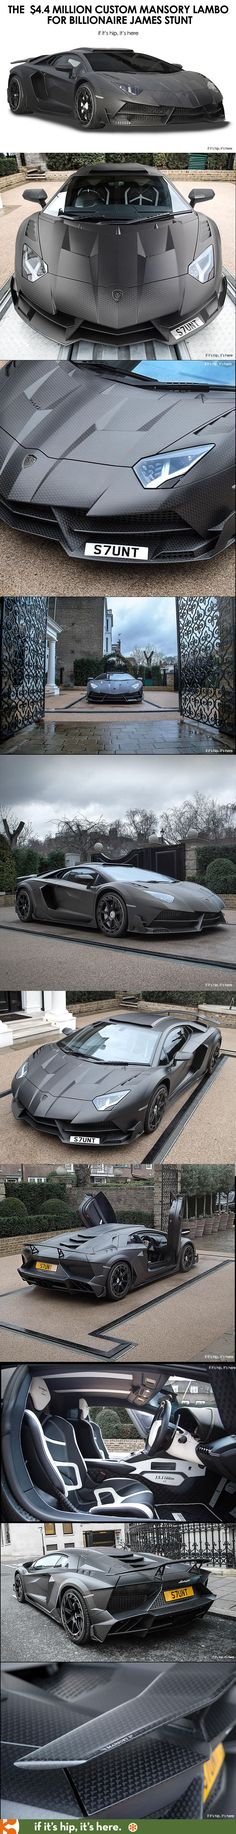 The killer Custom Carbon fibre clad Lamborghini by Mansory for billionaire James Stunt at if it's hip, it's here